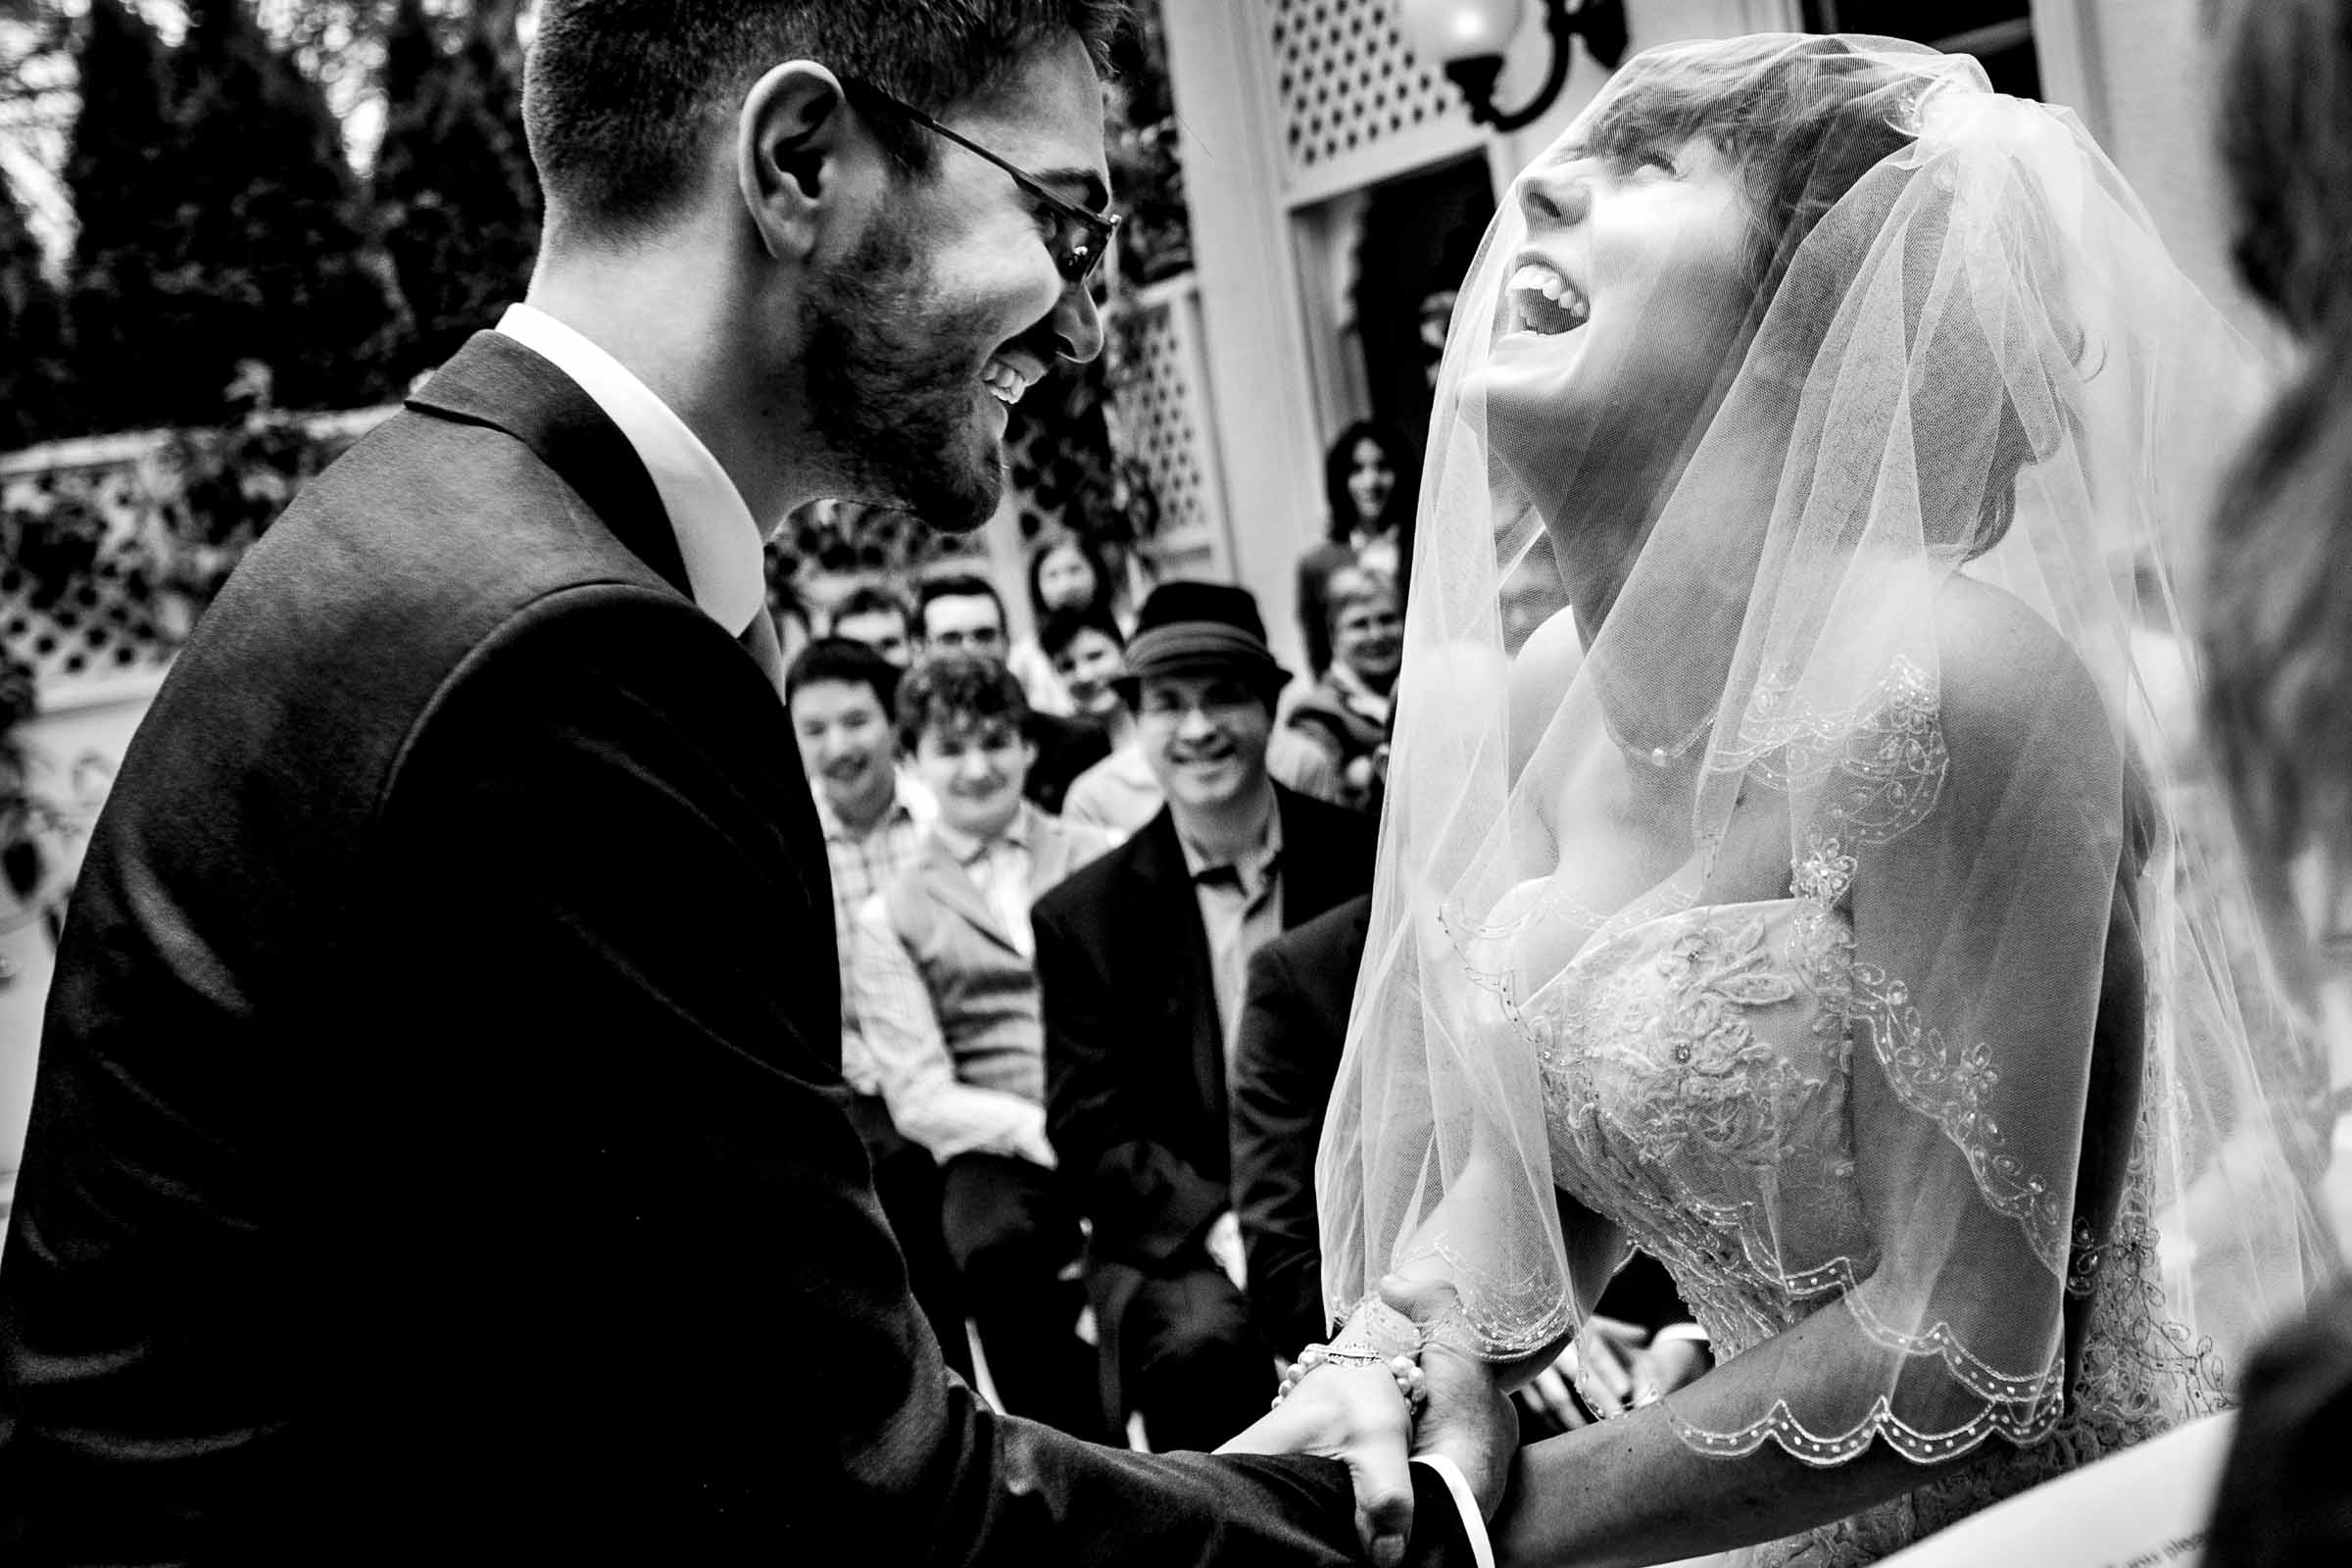 bride-and-groom-laughing-during-ceremony-tree-woodsmith-josandtree-wedding-photographers-conference-speakers